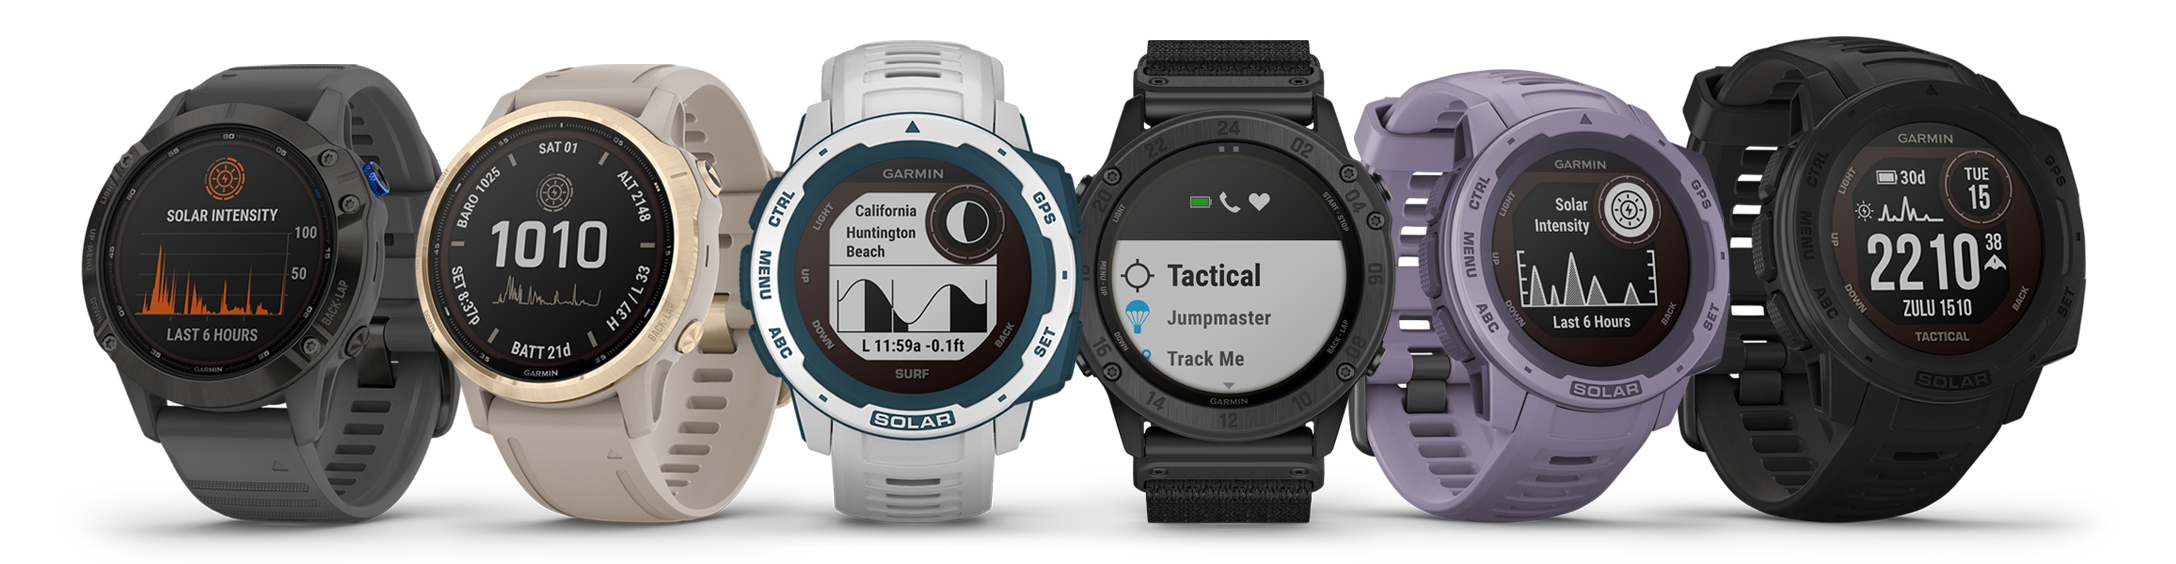 Garmin Instinct Solar smartwatch models